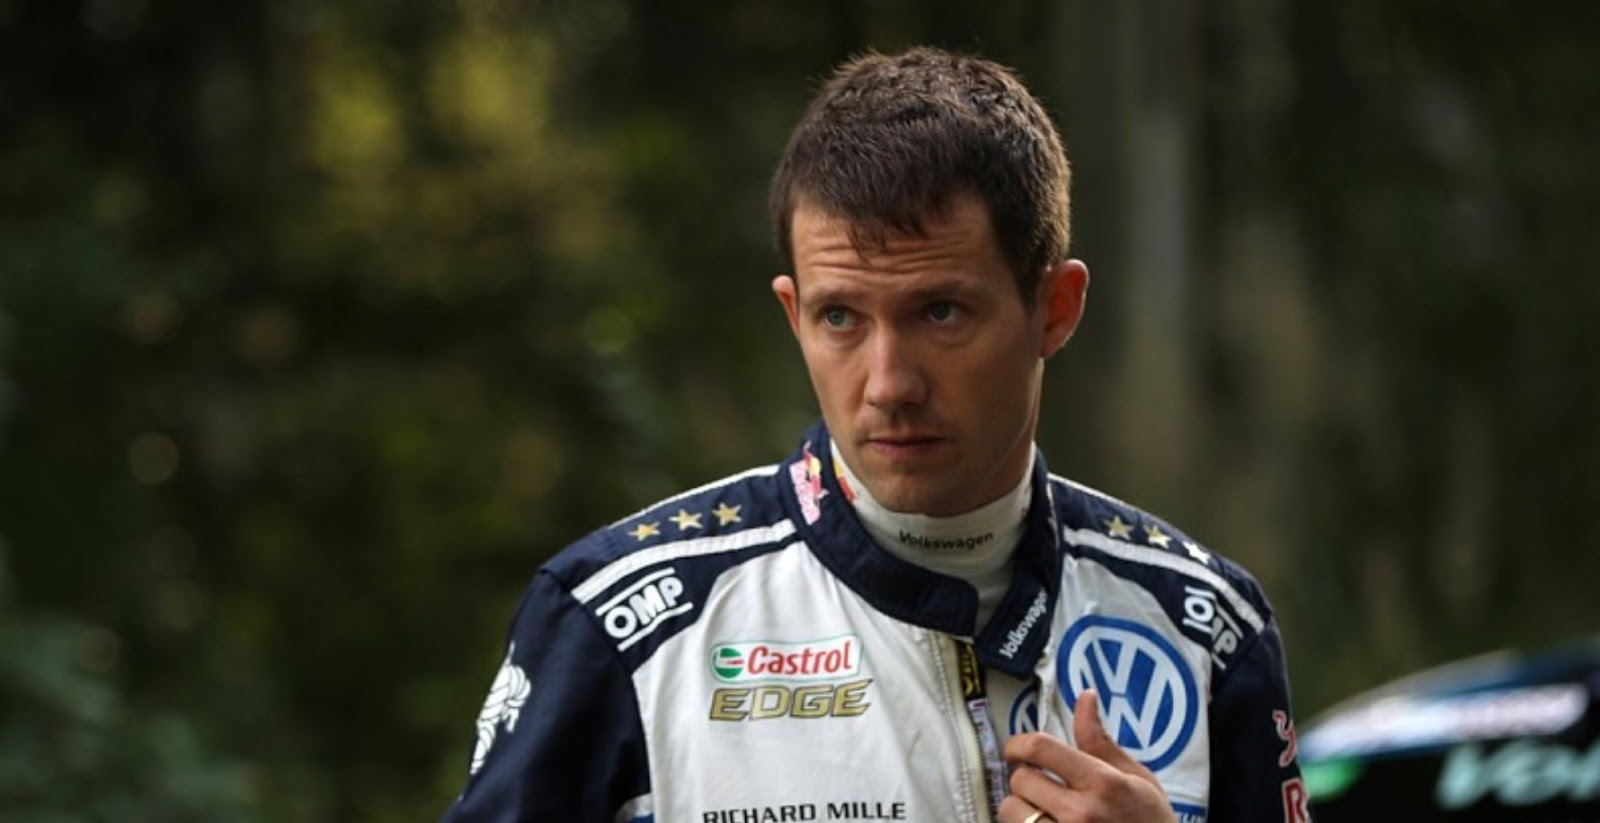 Ogier becomes 5 times world champion of rally WRC 2017